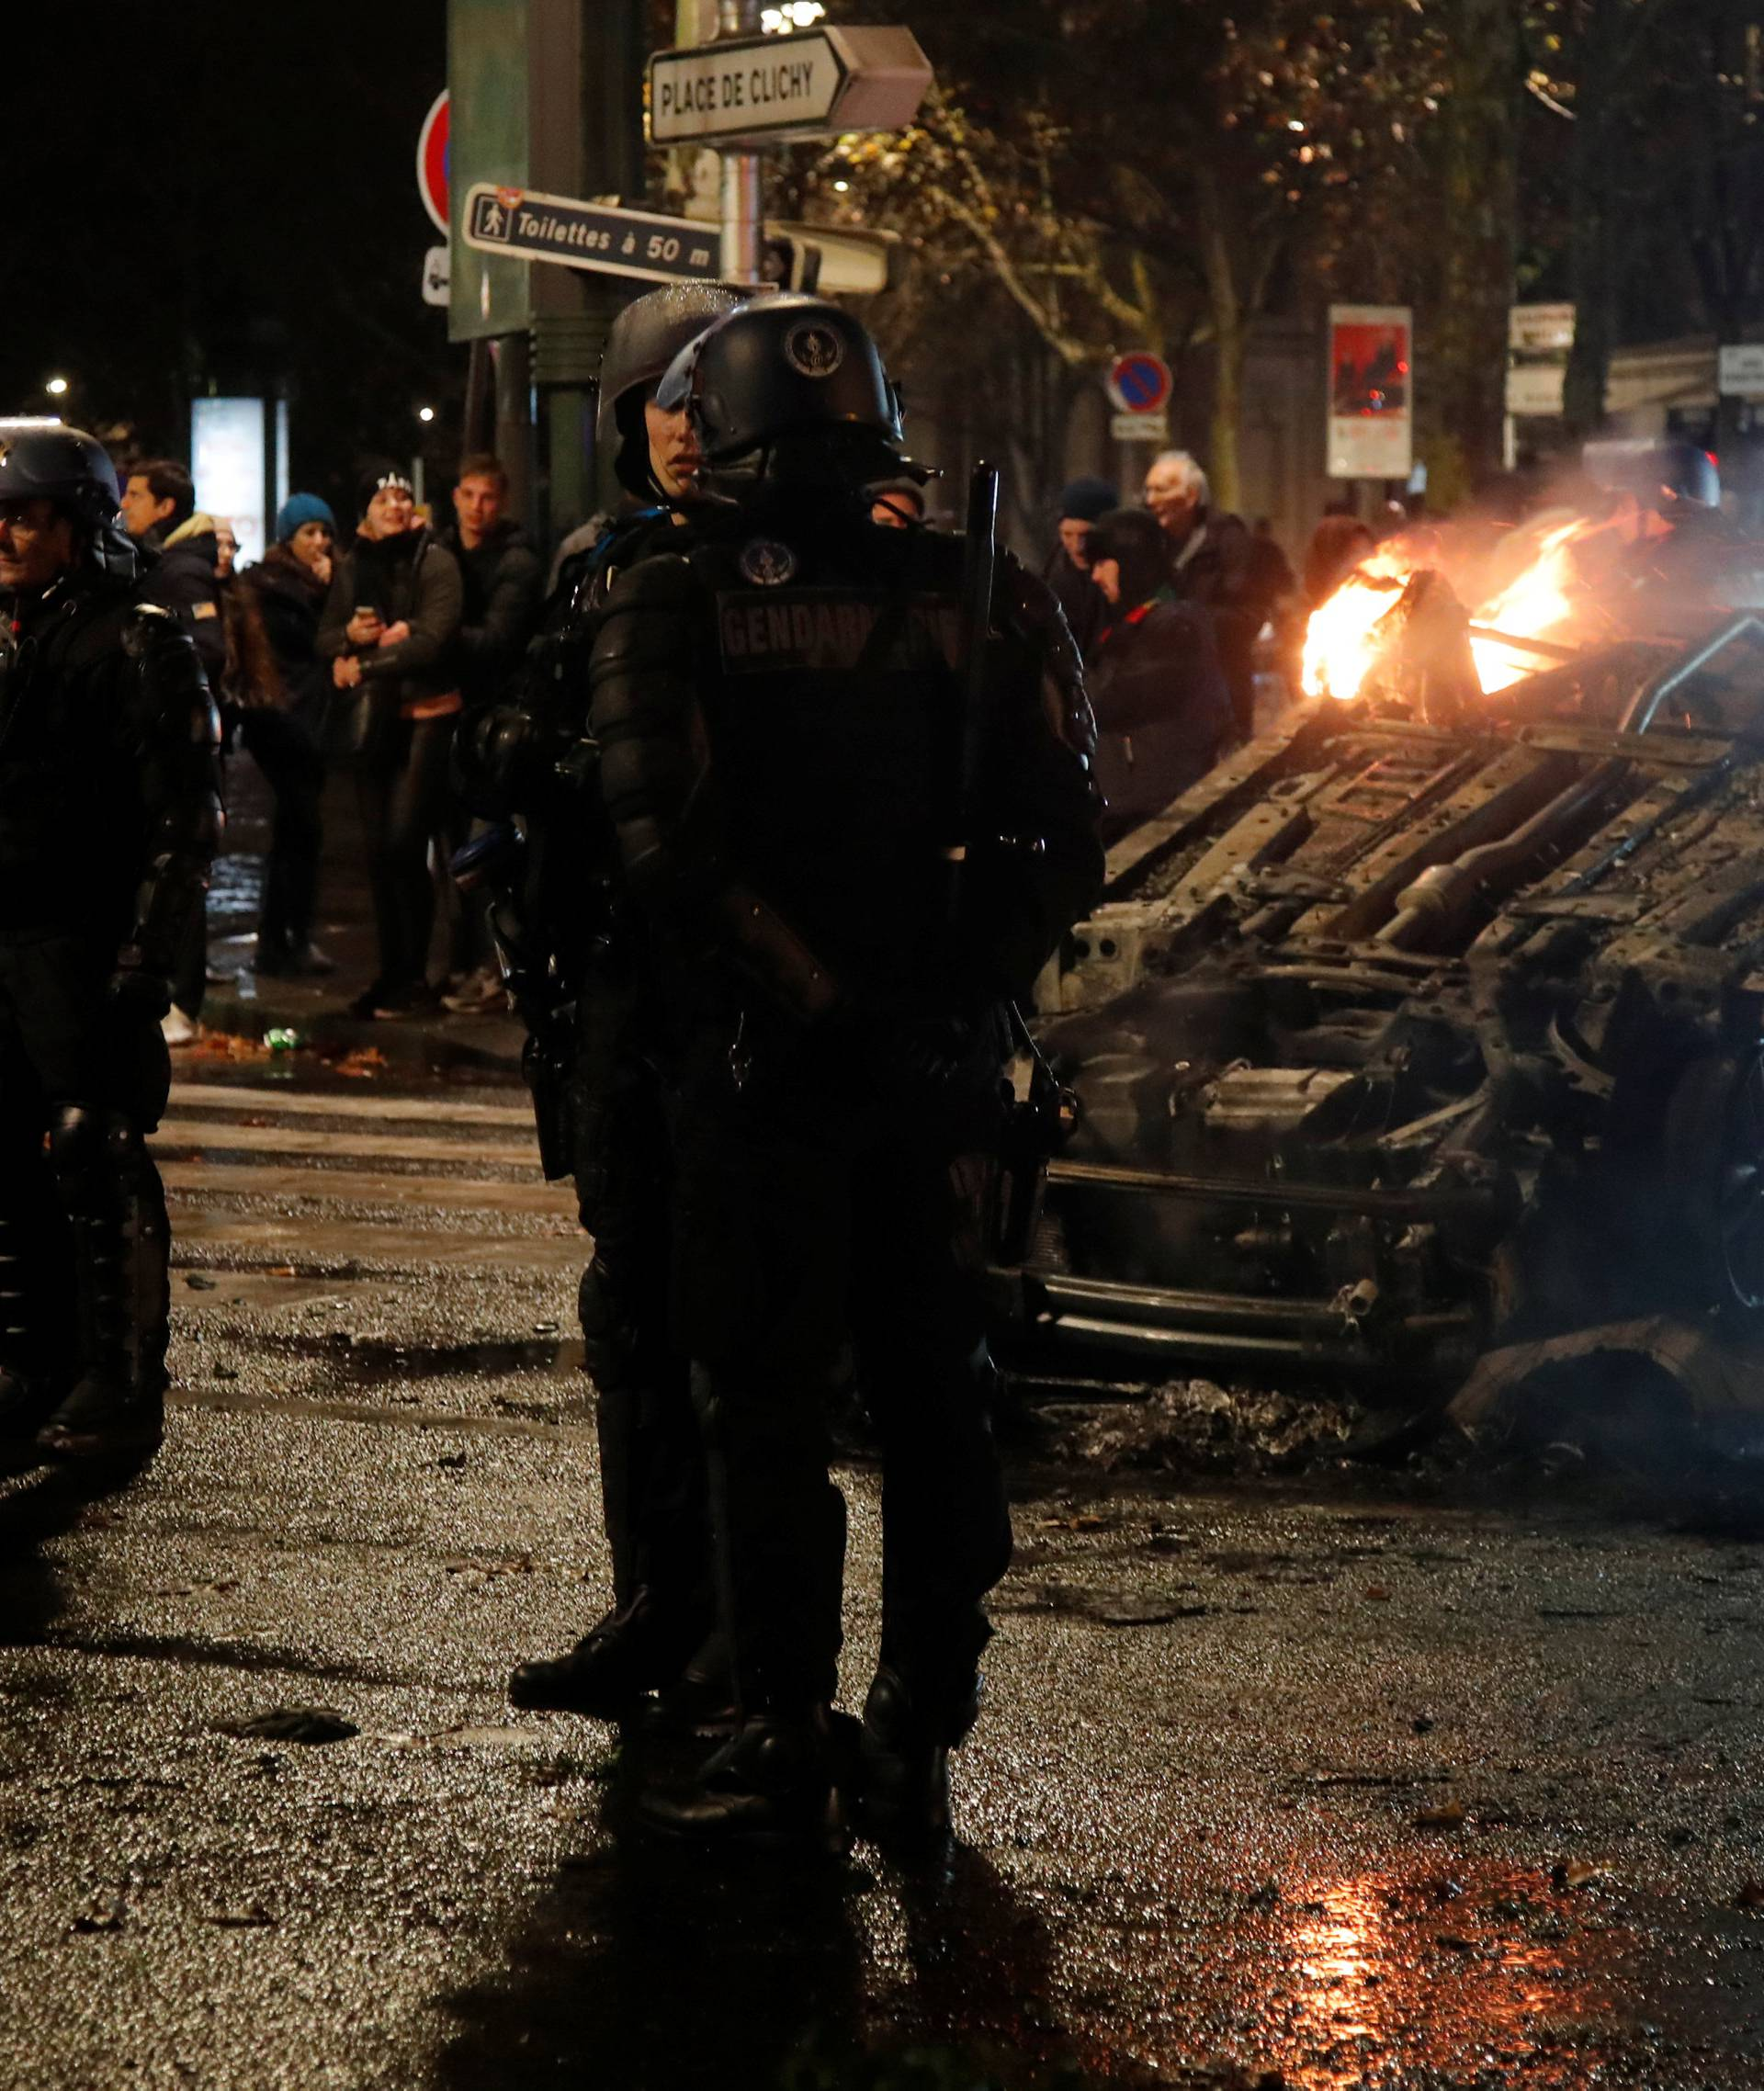 French riot police stand near an overturned burning car on avenue Kleber after clashes with protesters wearing yellow vests, a symbol of a French drivers' protest against higher diesel taxes, in Paris